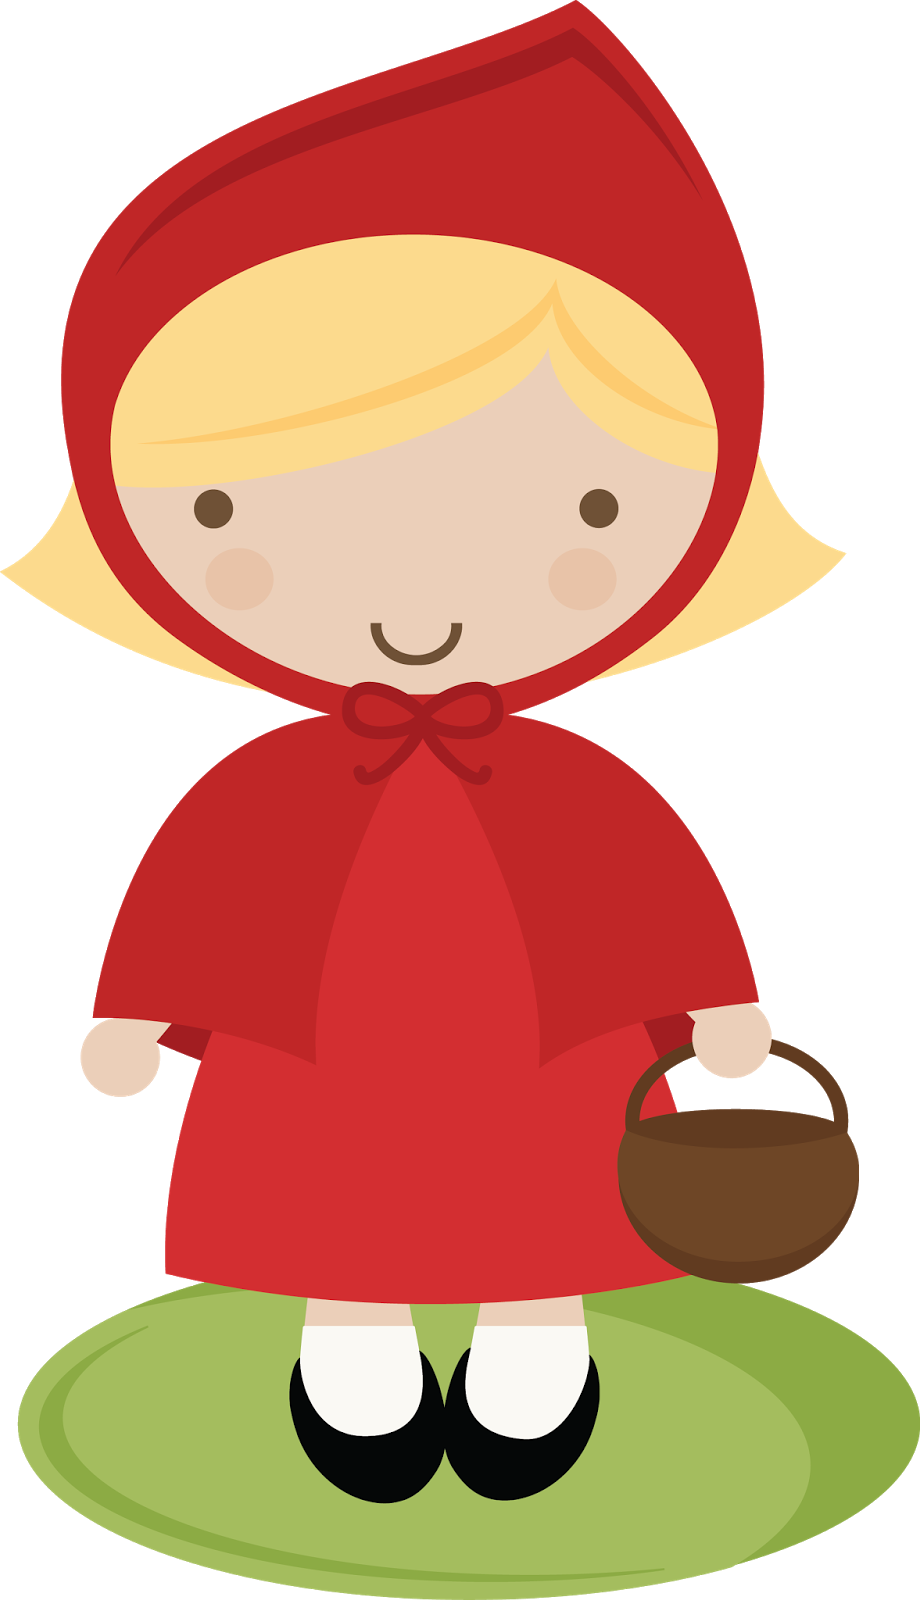 image royalty free download Tale clipart. Little red riding hood